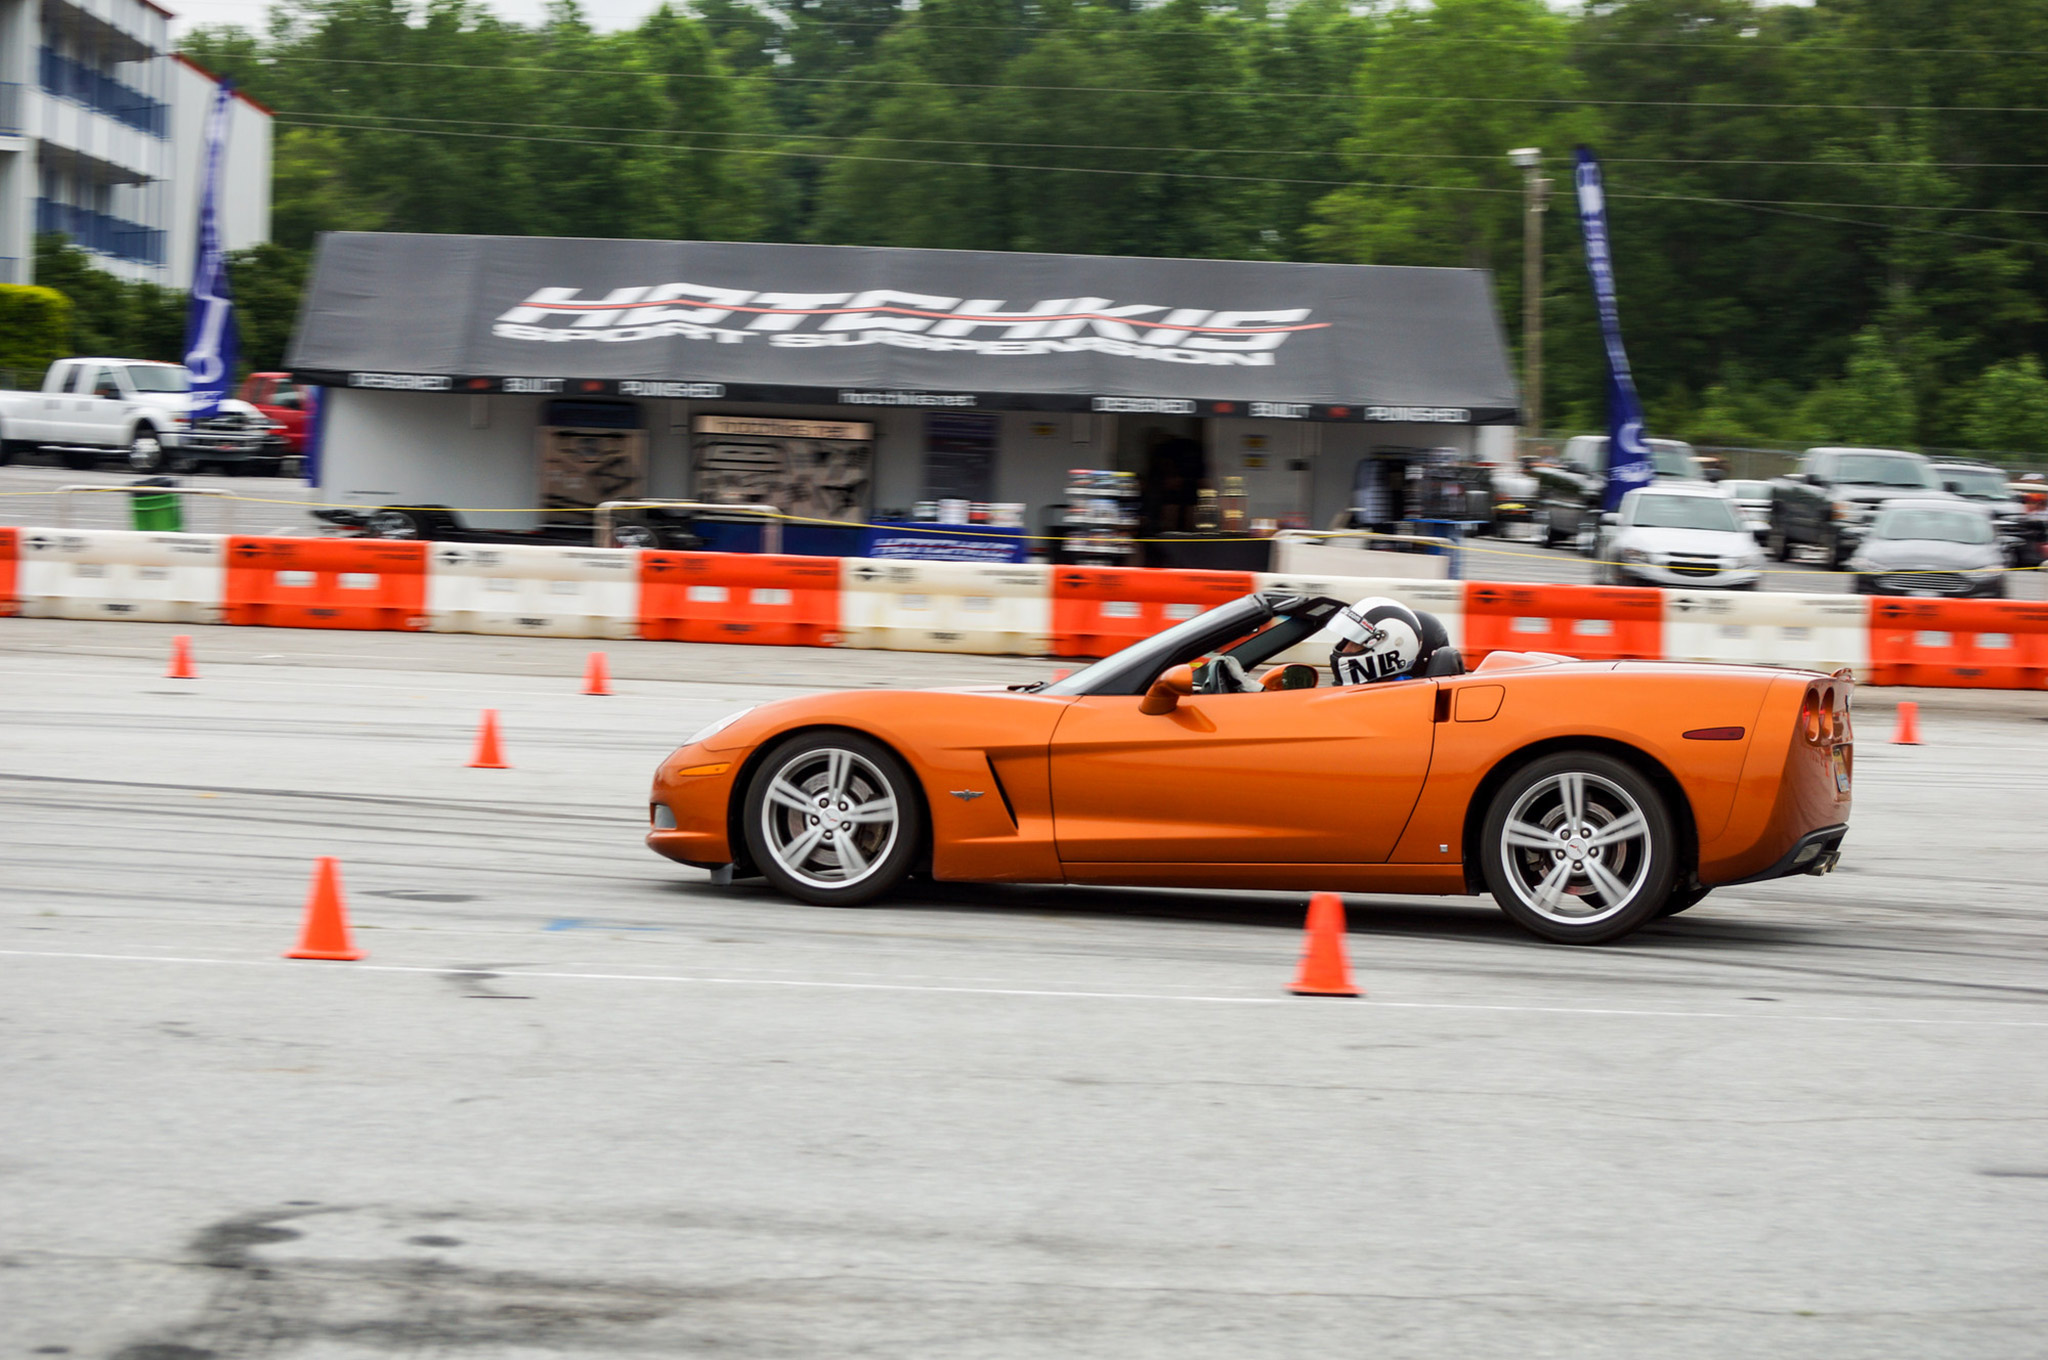 """While there were plenty of noise makers at the Hotchkis Auto X, it was Johnny """"C"""" Cichowski, a South-East field representative for OG Racing in Atlanta, who was quietly ripping up the asphalt behind the wheel of his 2002 convertible Corvette. Johnny C normally pilots an LS-powered Mazda Miata in competitive events, which given the power-to-weight ratio, should be a fun ride as well."""